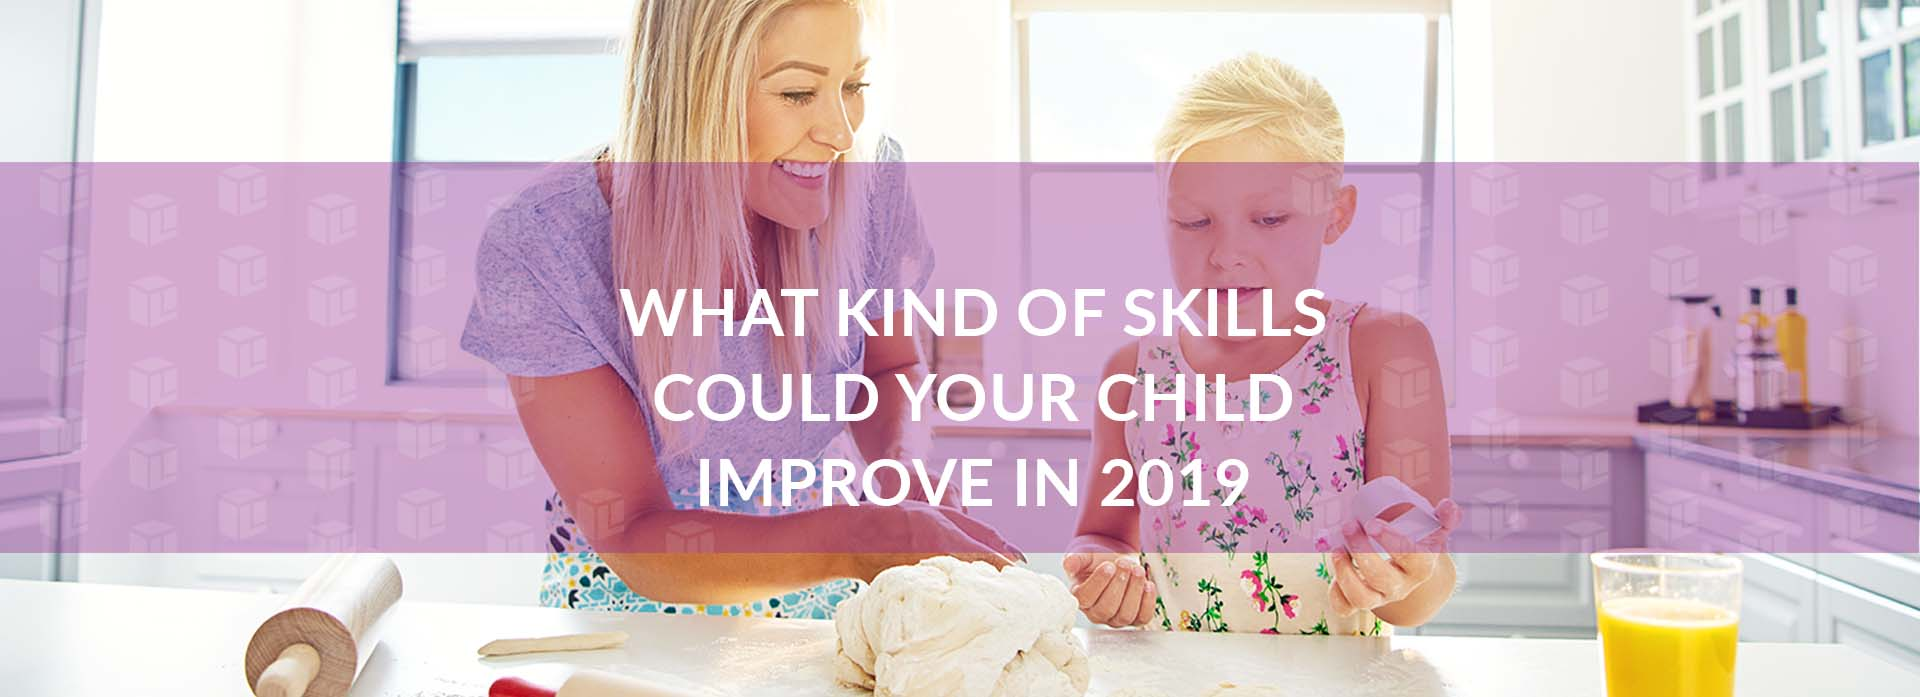 What Kind Of Skills Could Your Child Improve in 2019?